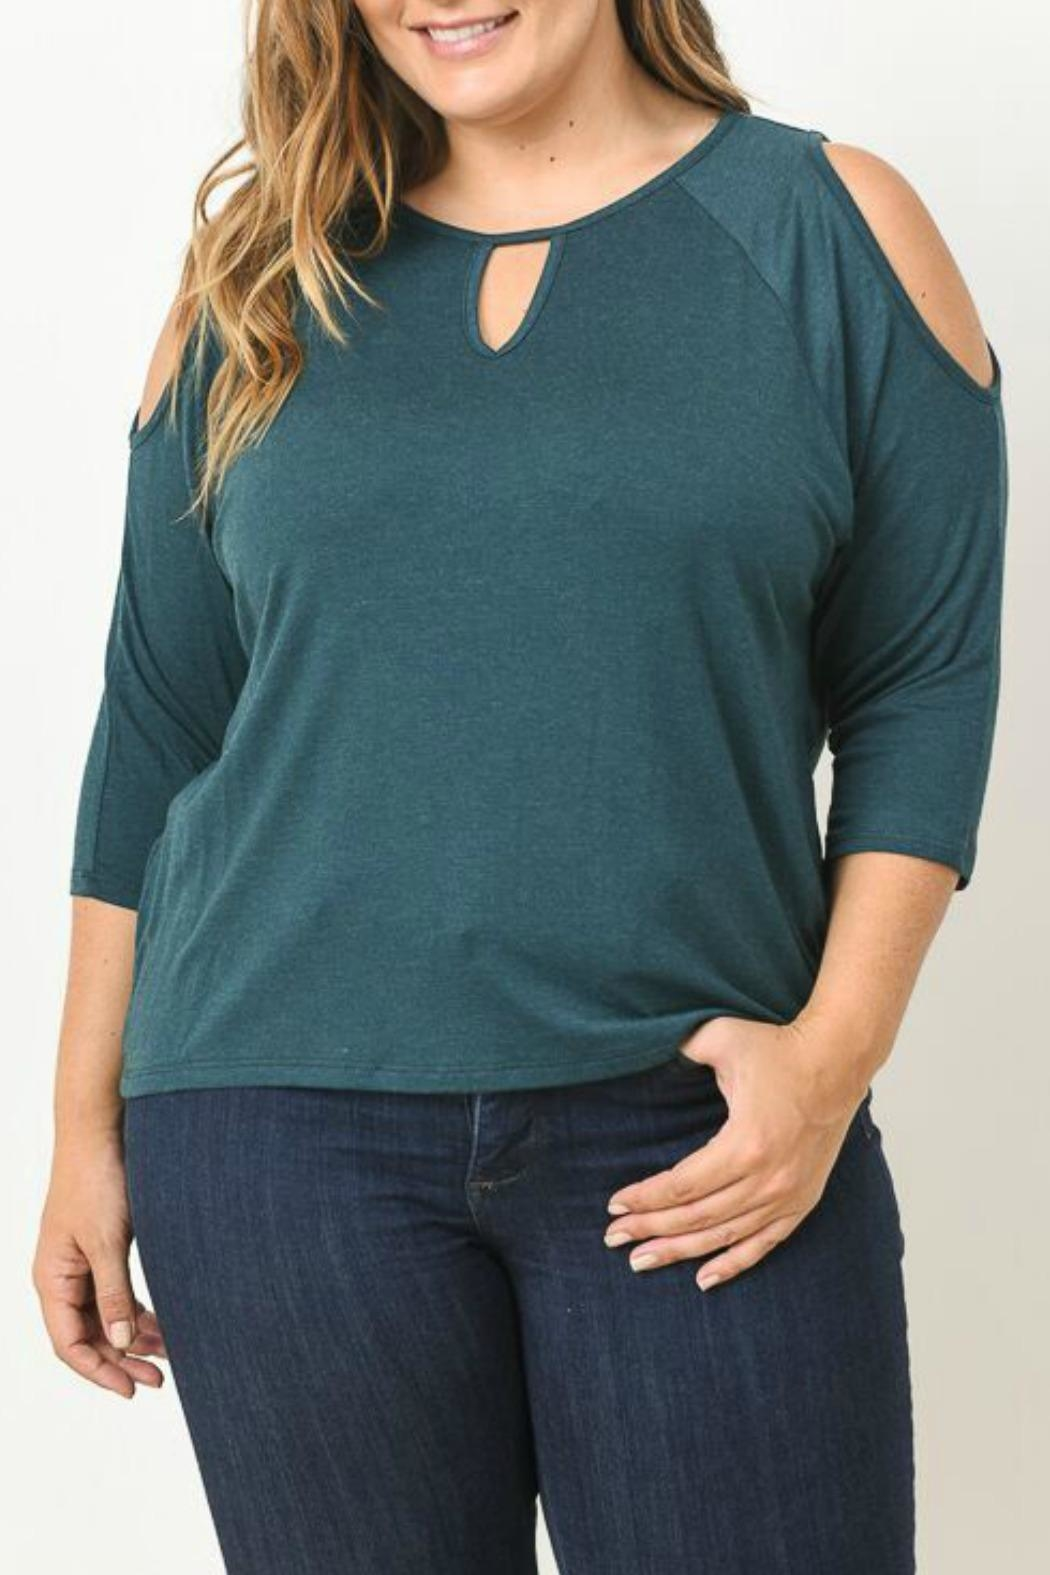 Gilli Green Cut Out Blouse - Main Image